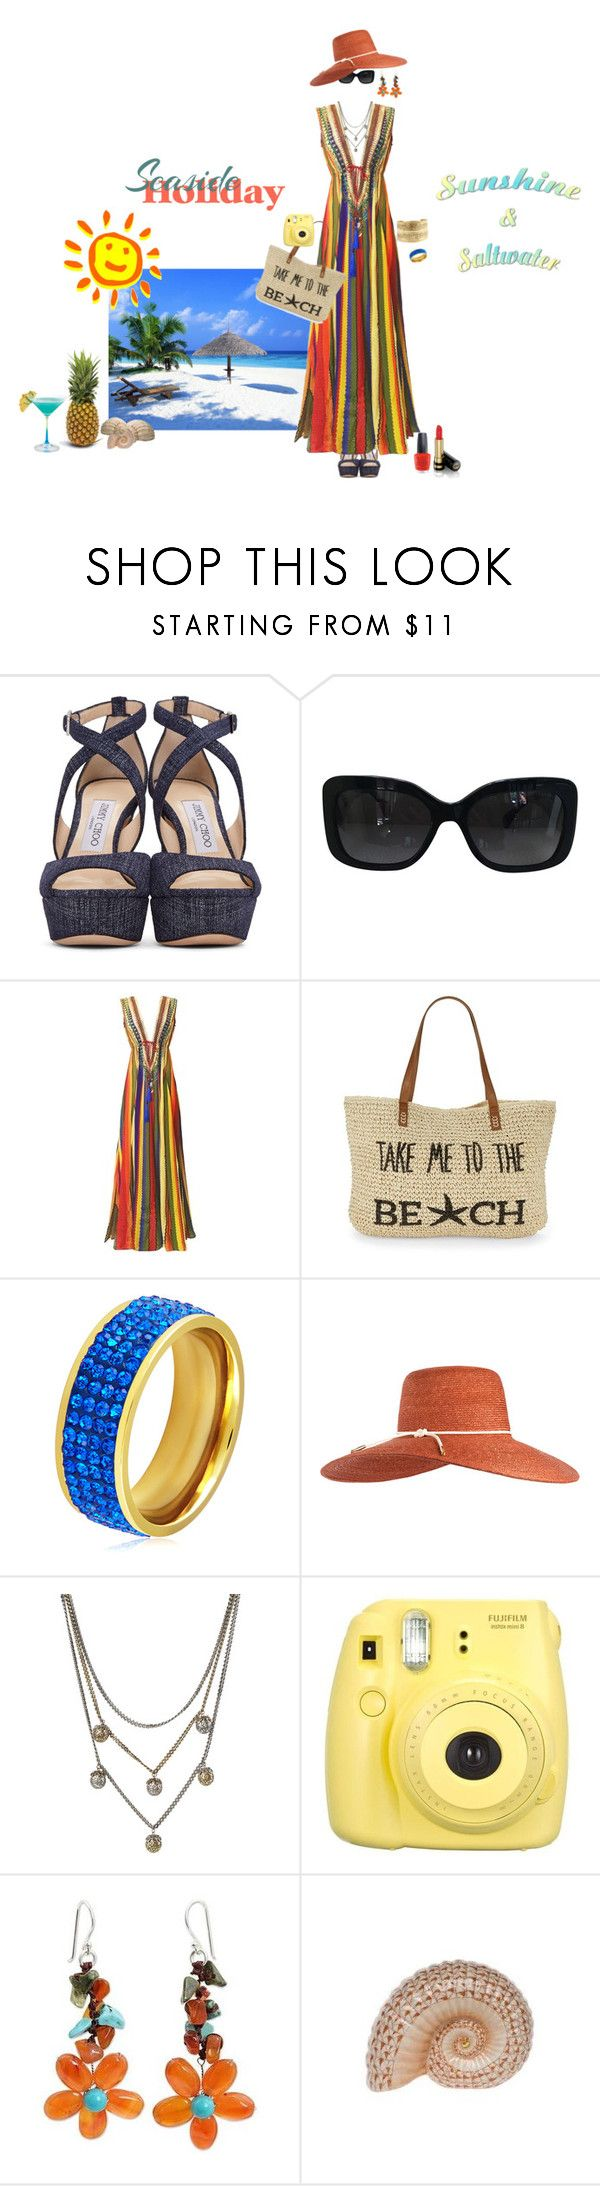 """HOLIDAY ... Sunshine & Saltwater !!"" by fashiongirl-26 ❤ liked on Polyvore featuring Jimmy Choo, Chanel, Straw Studios, West Coast Jewelry, Eugenia Kim, Alexander McQueen, Fujifilm, NOVICA, Herend and Gucci"